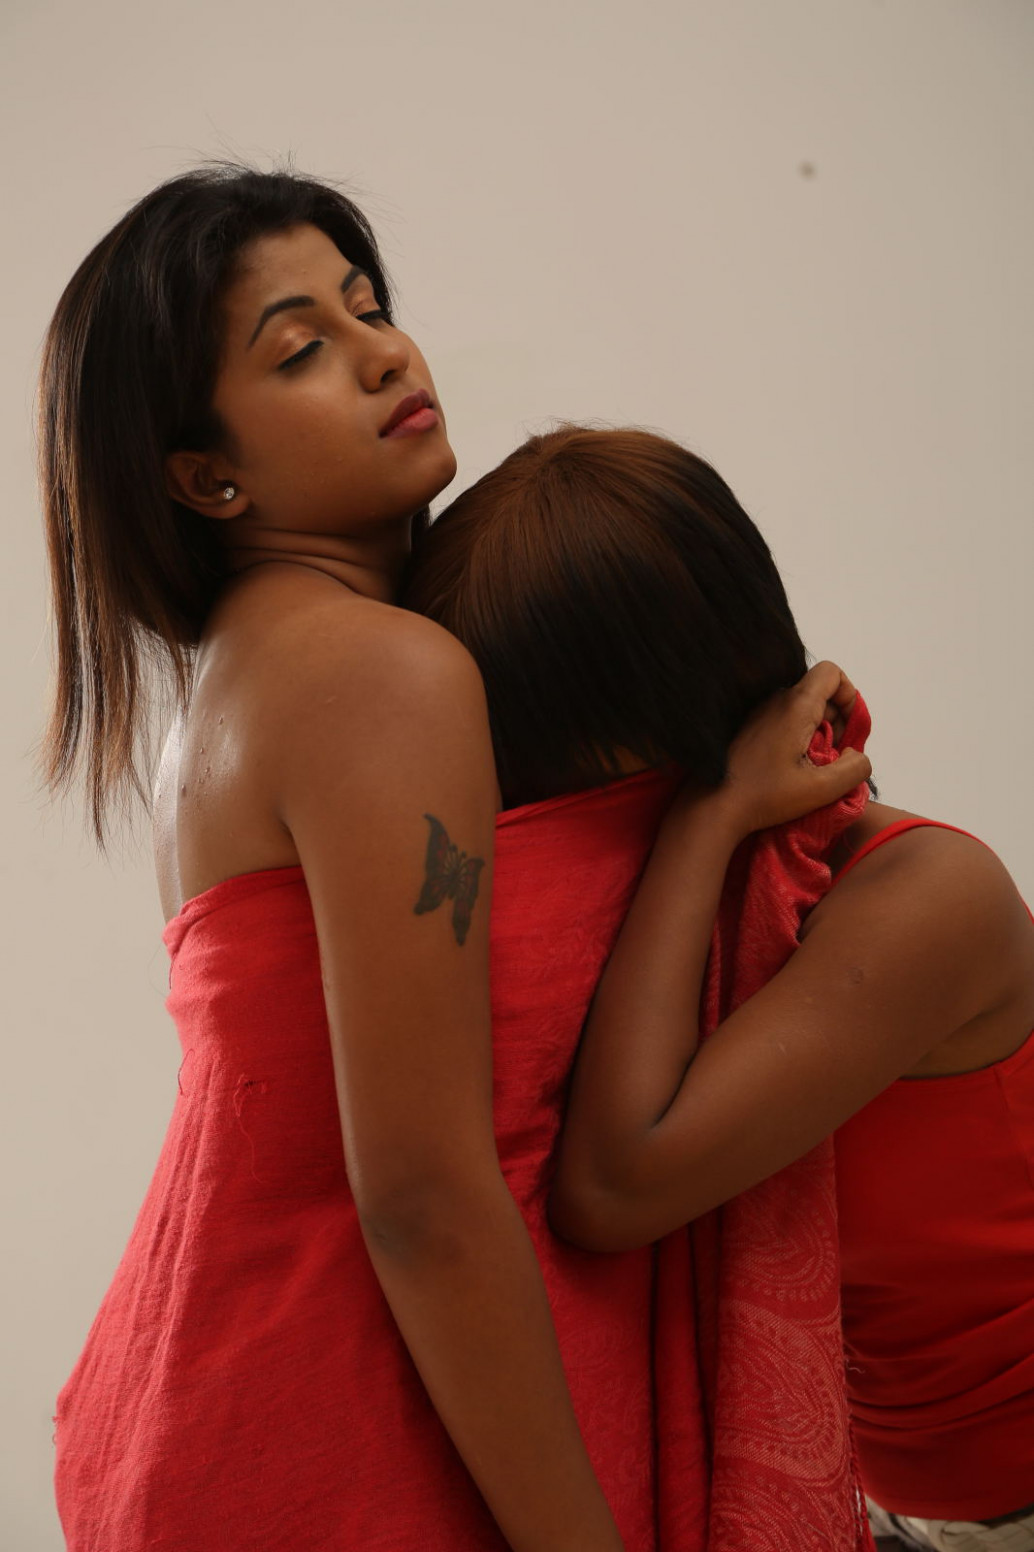 Telugu Movie Affair Hot Photo Shoot - HD Latest Tamil ...